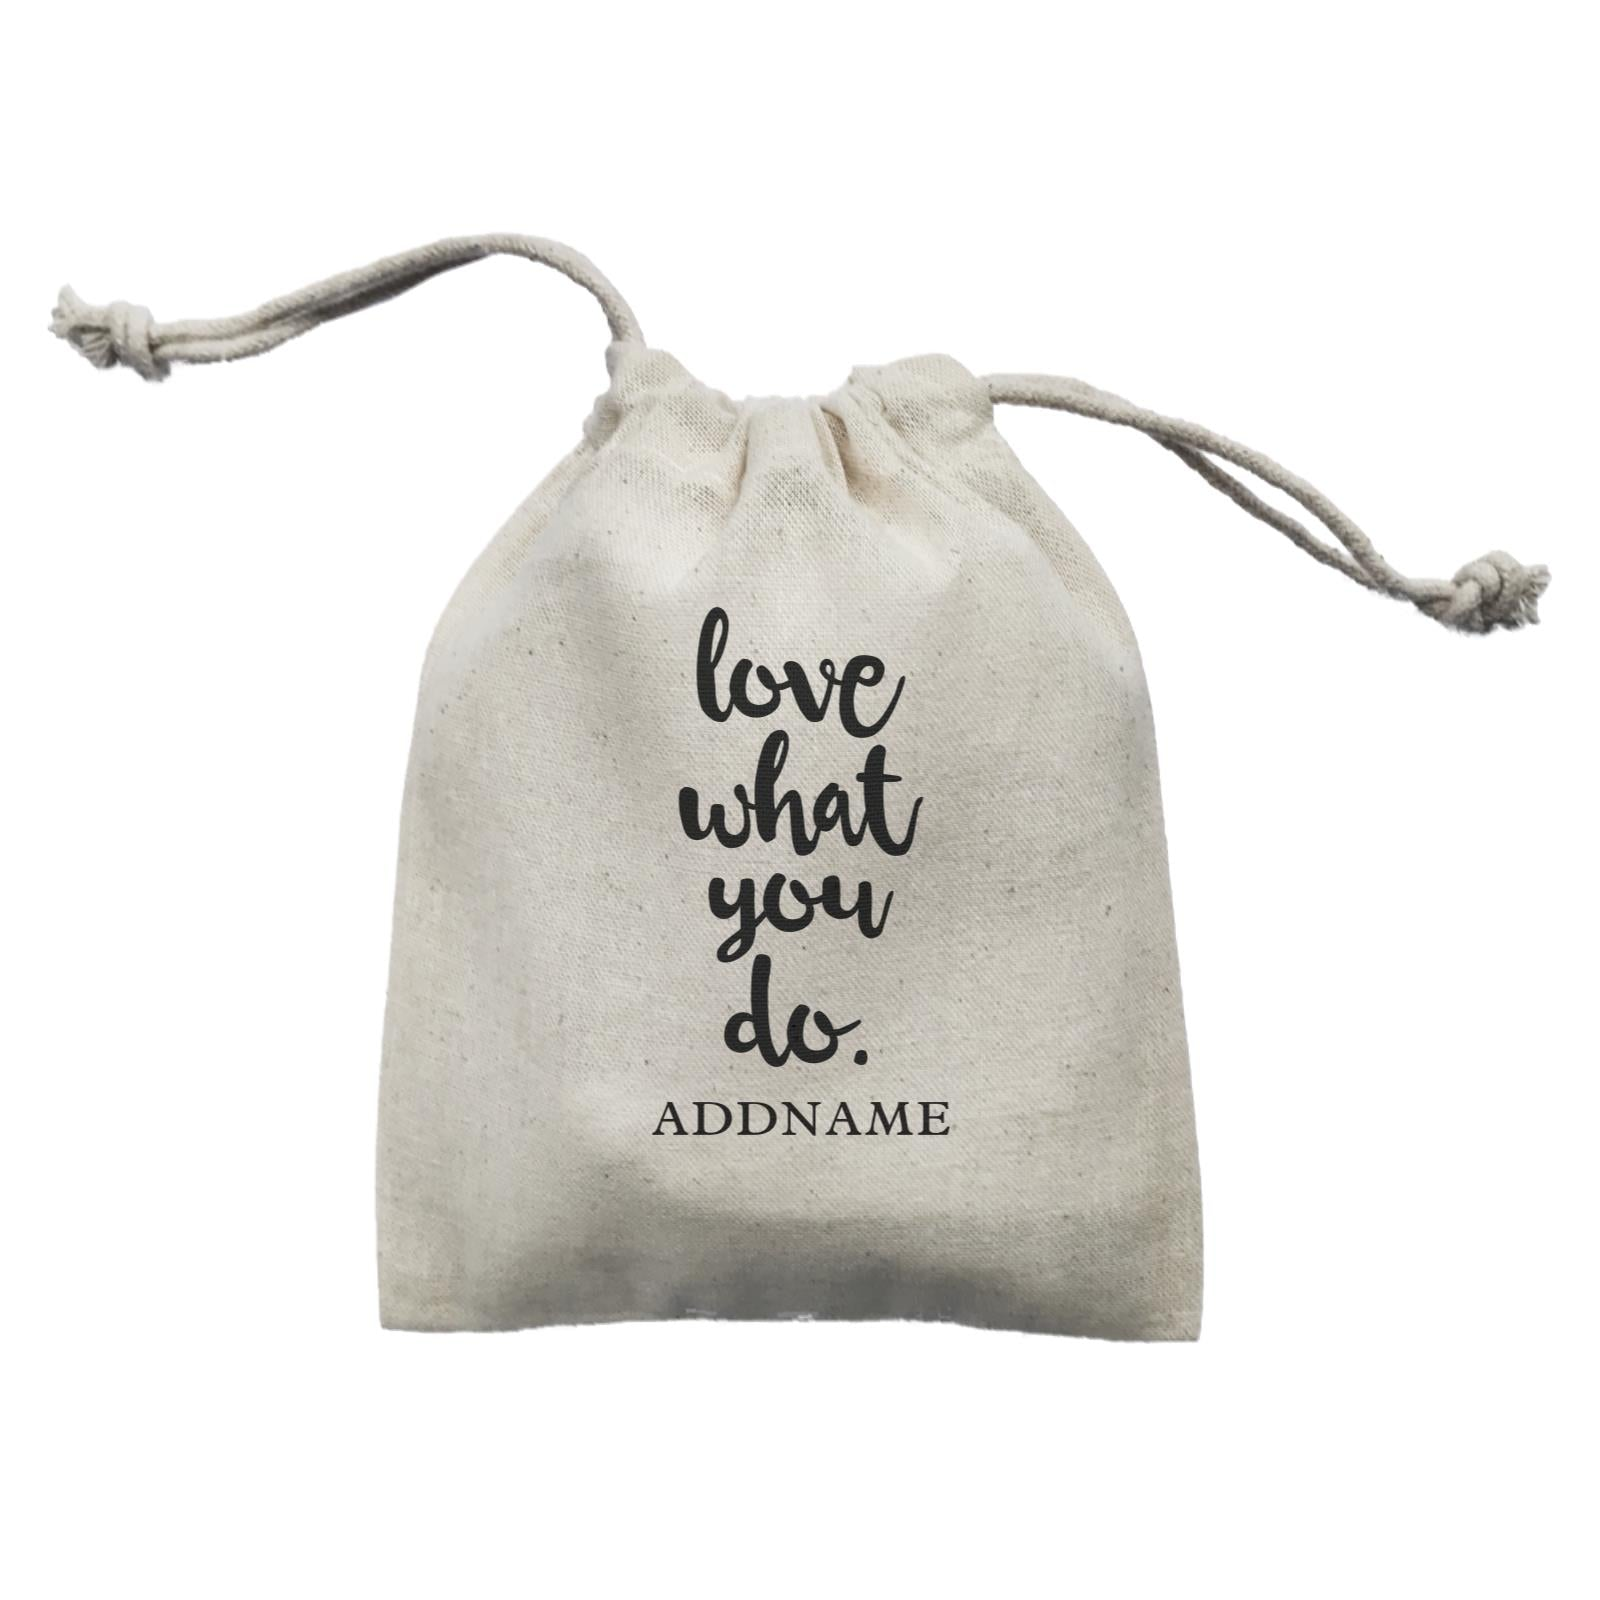 Inspiration Quotes Love What You Do Addname Mini Accessories Mini Pouch